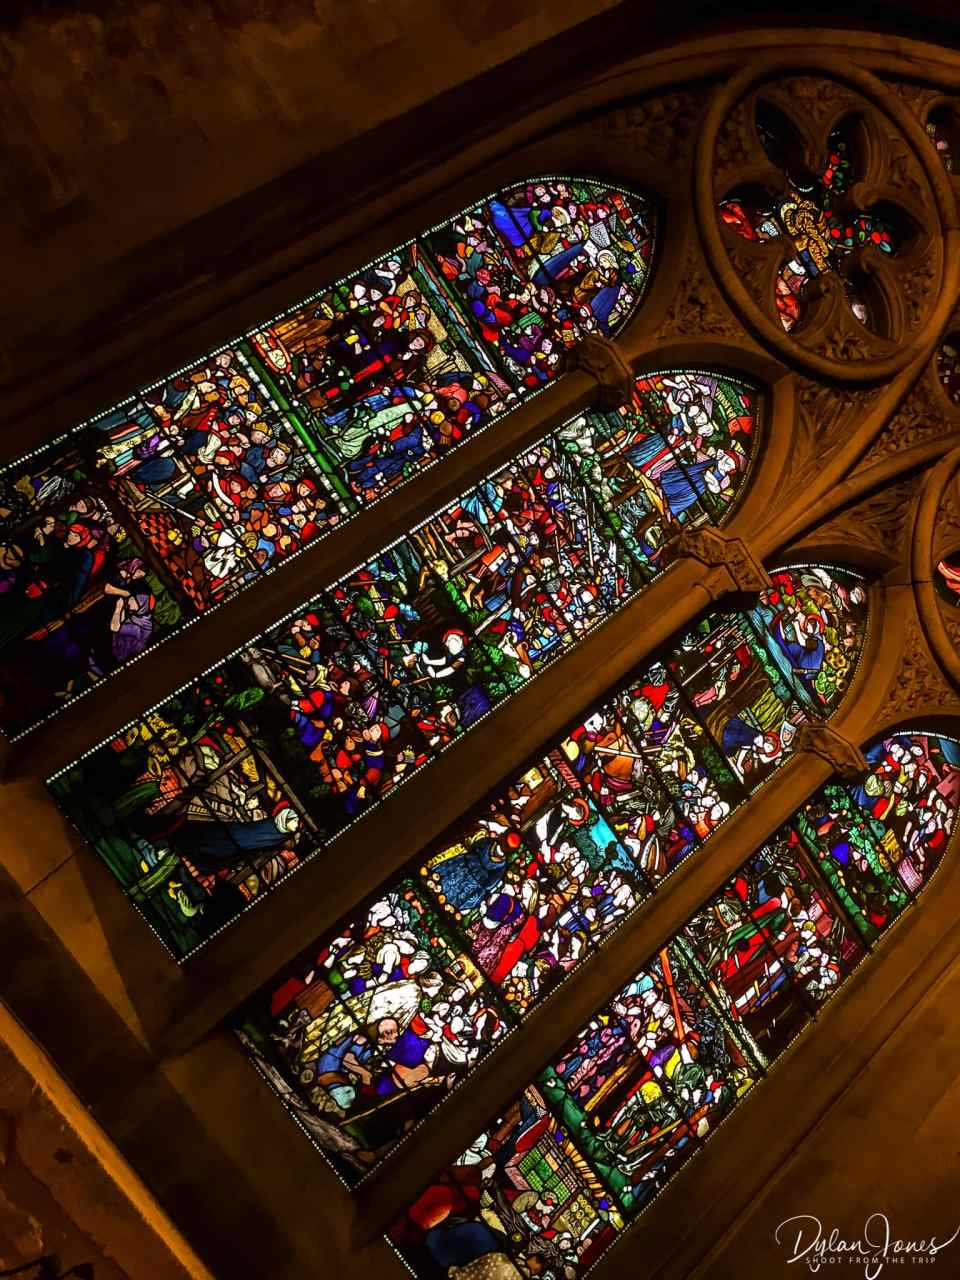 Stained glass in Christchurch Cathedral